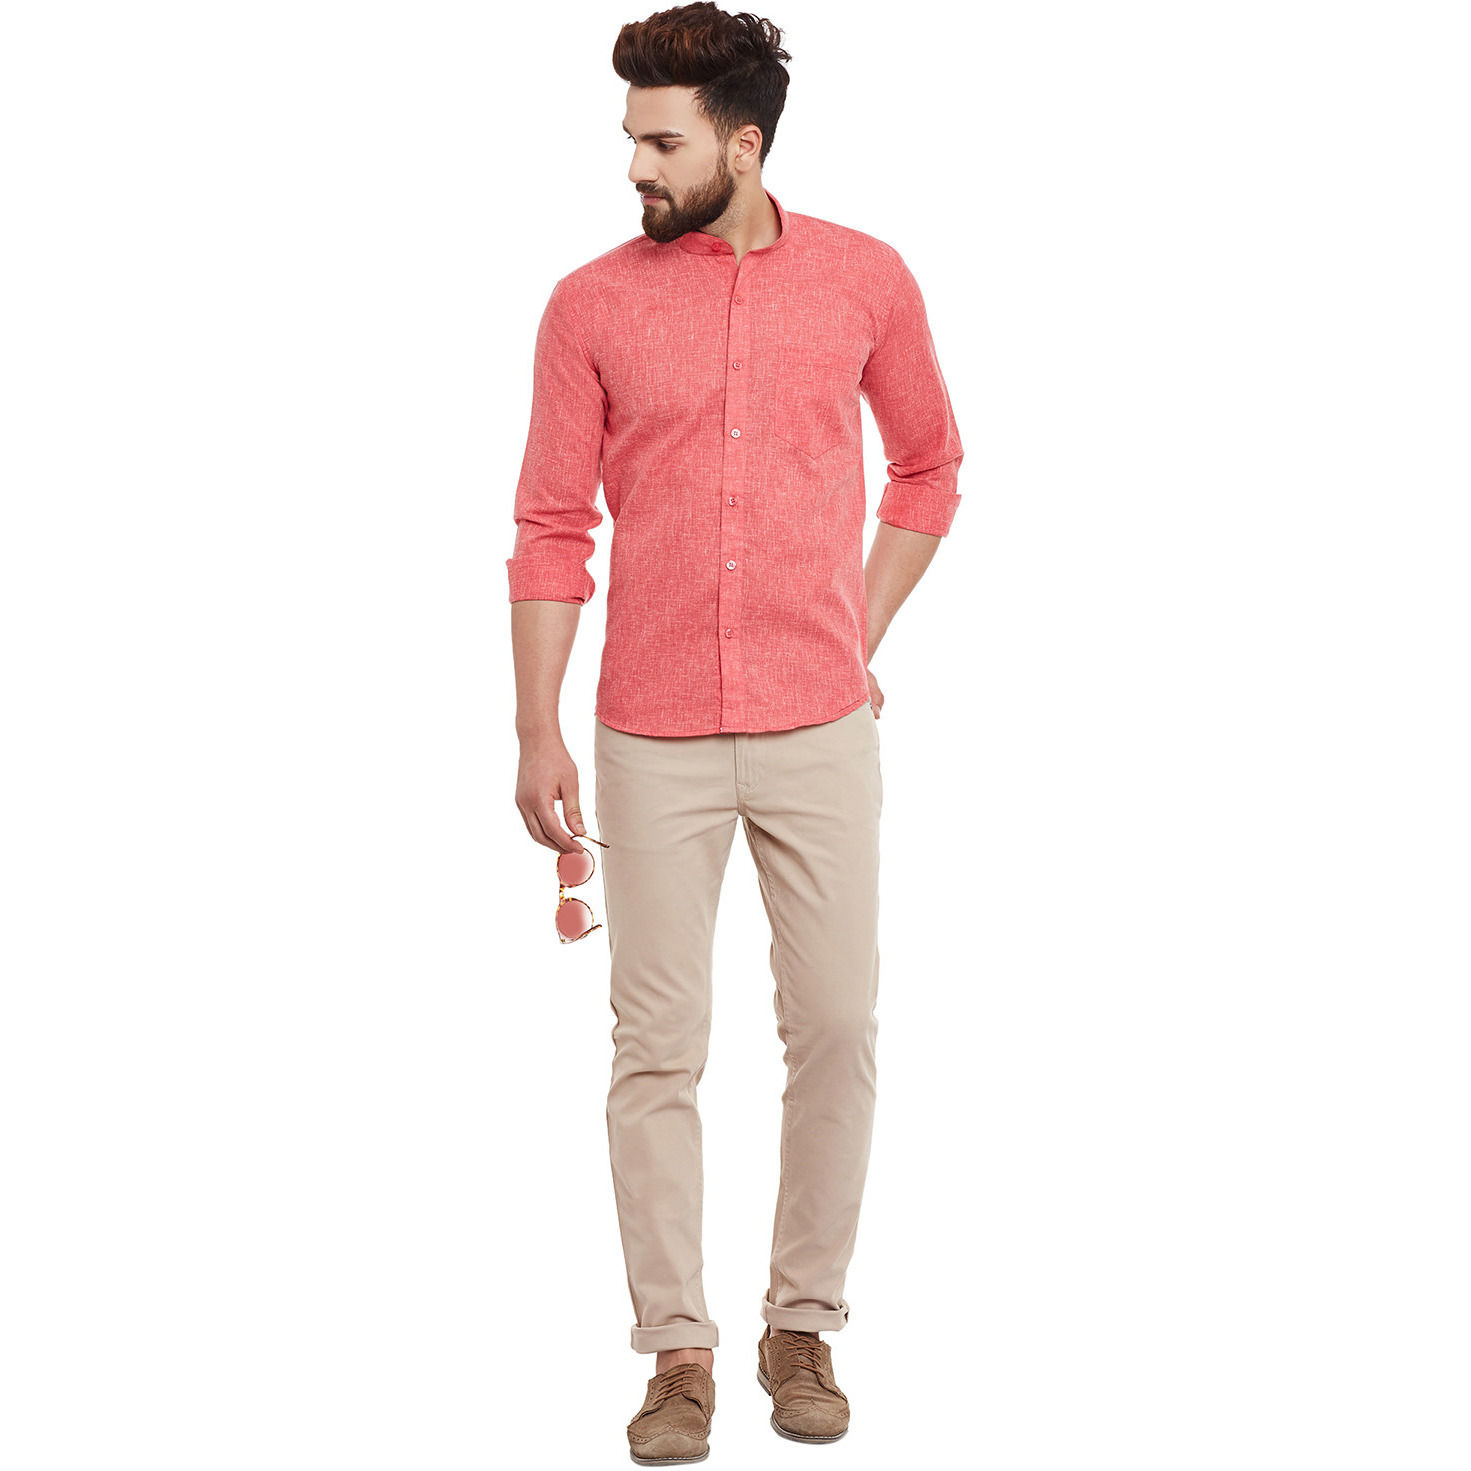 Mens Red Cotton Linen Shirt Regular Fit Full sleeve Banded Collar